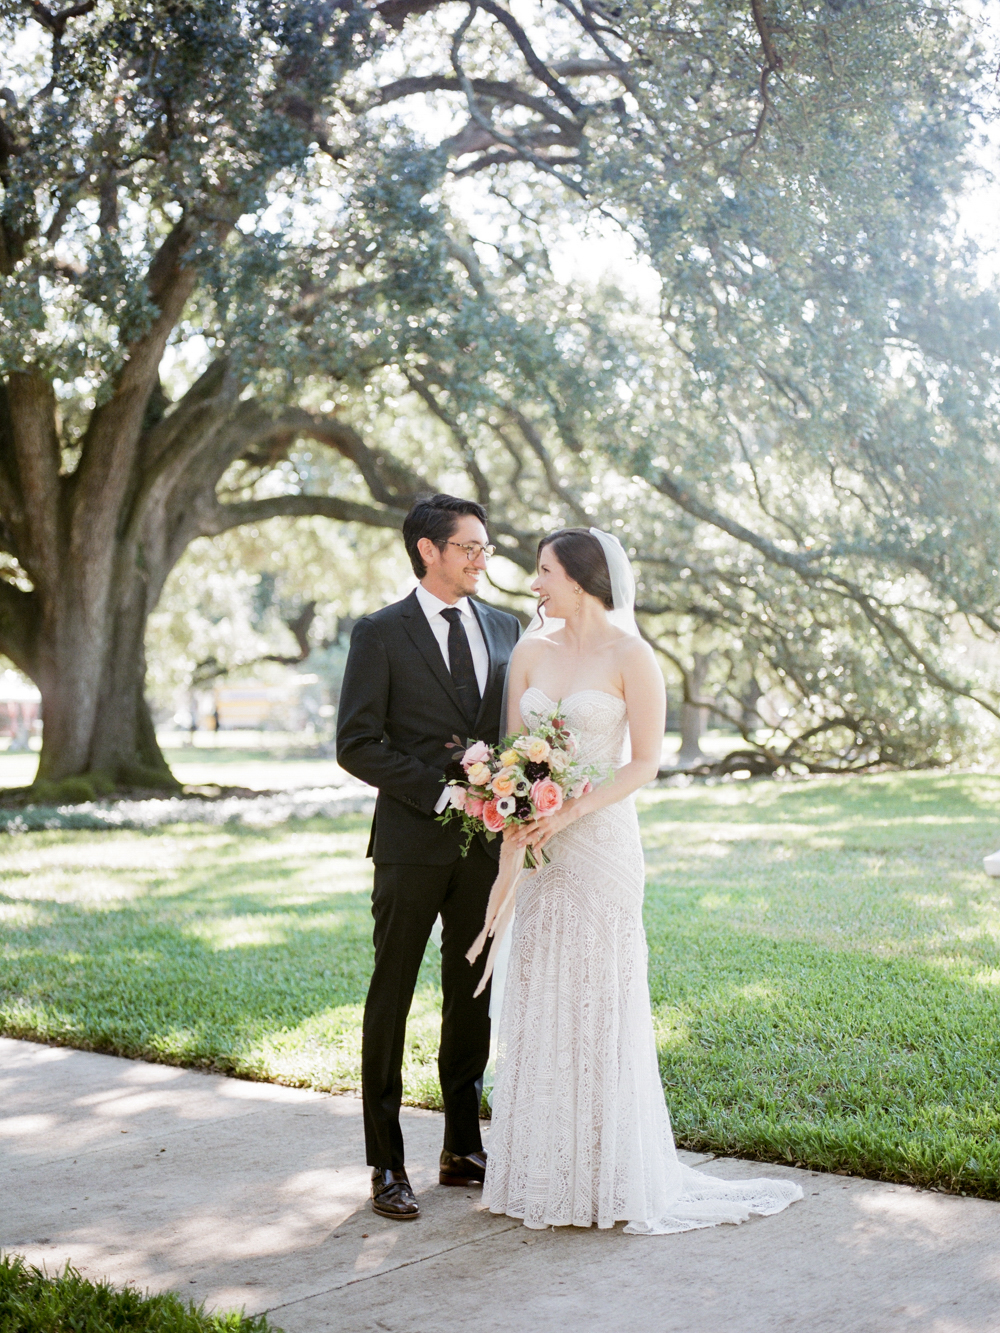 Christine Gosch - destination film photographer - houston wedding photographer - fine art film photographer - elopement photographer - destination wedding - understated wedding - simple beautiful wedding photography-61.jpg